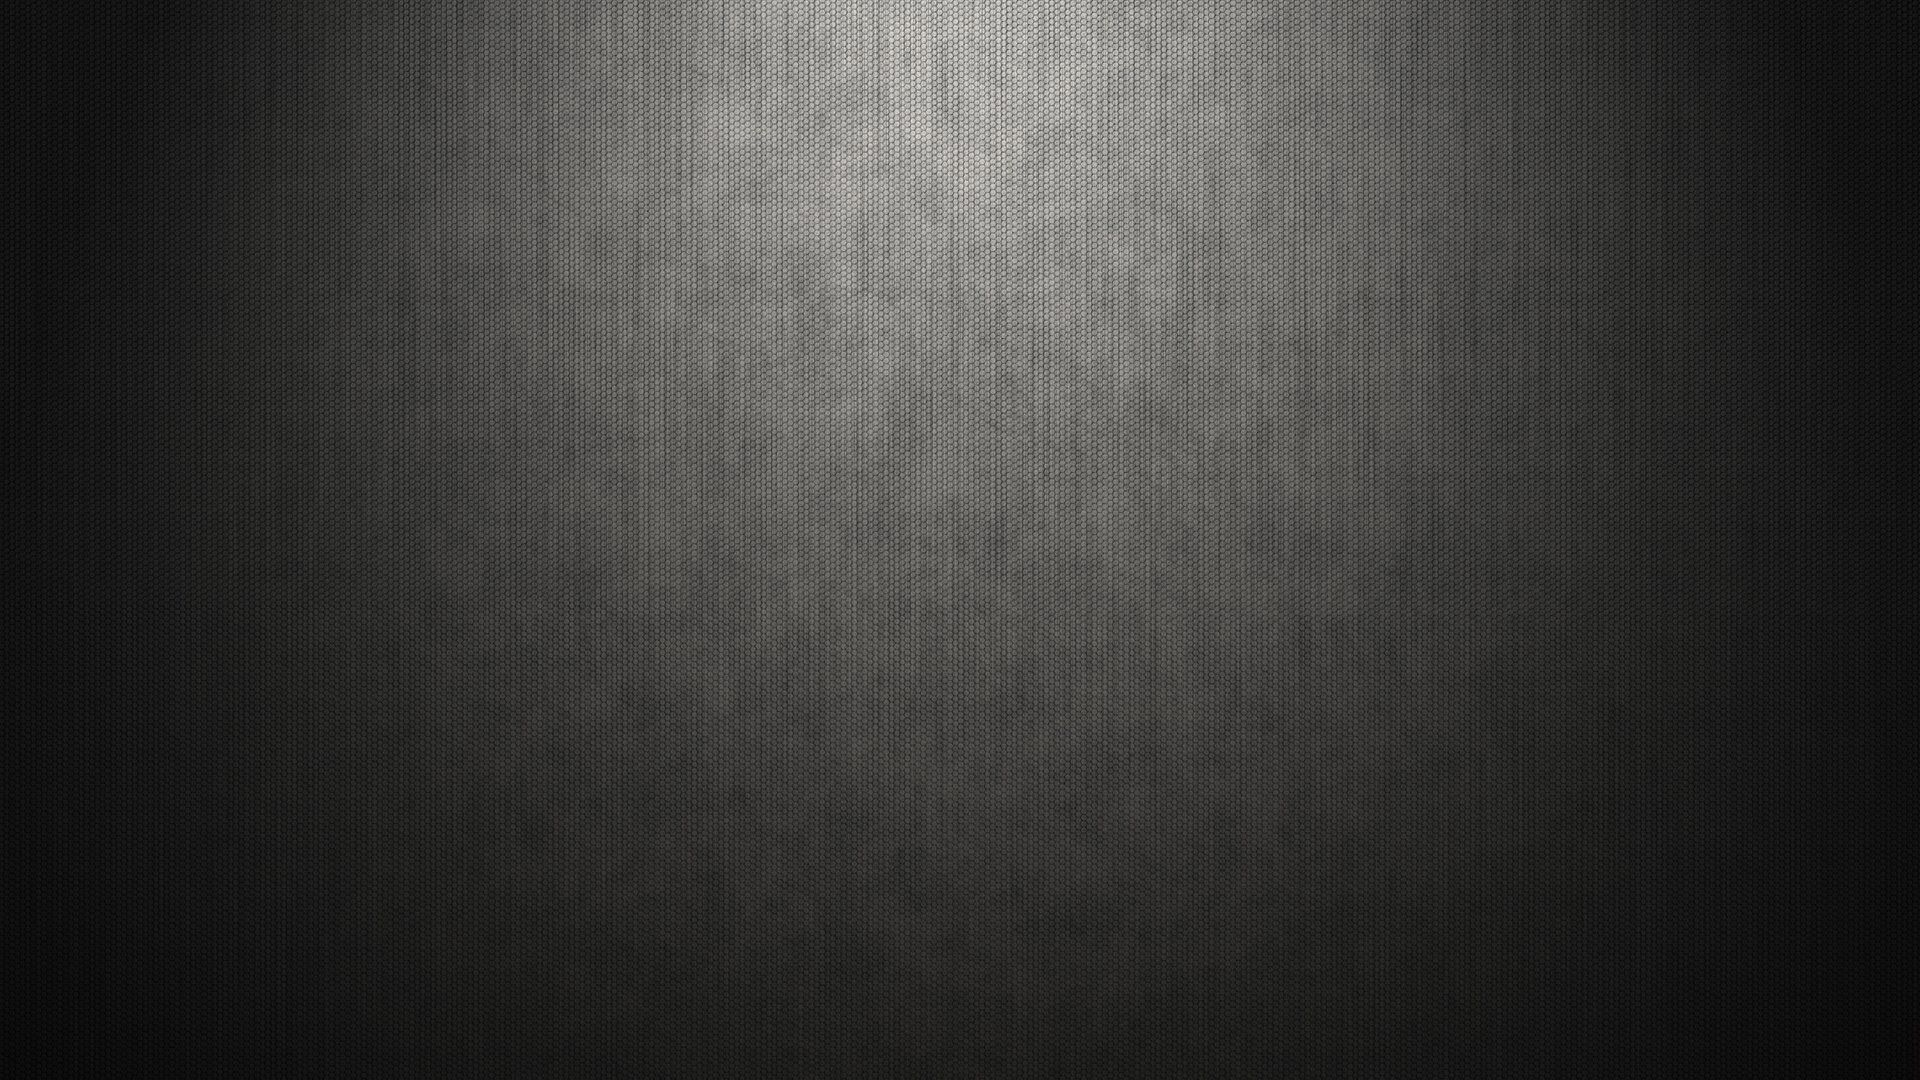 Website Background Texture 1080p picture